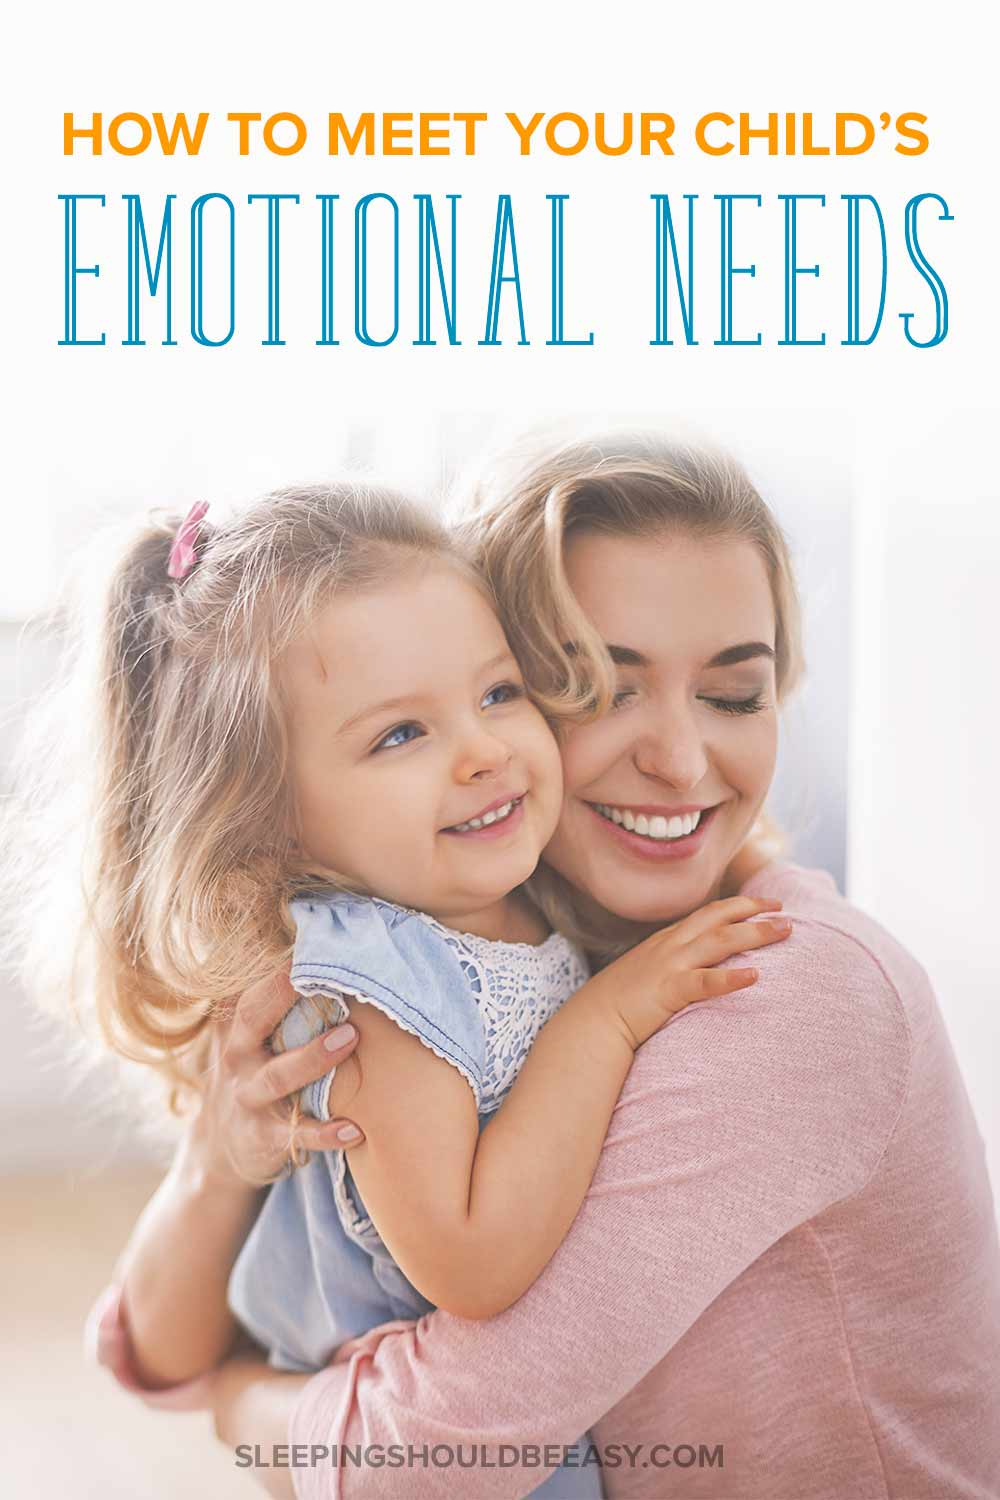 How to meet the emotional needs of a child